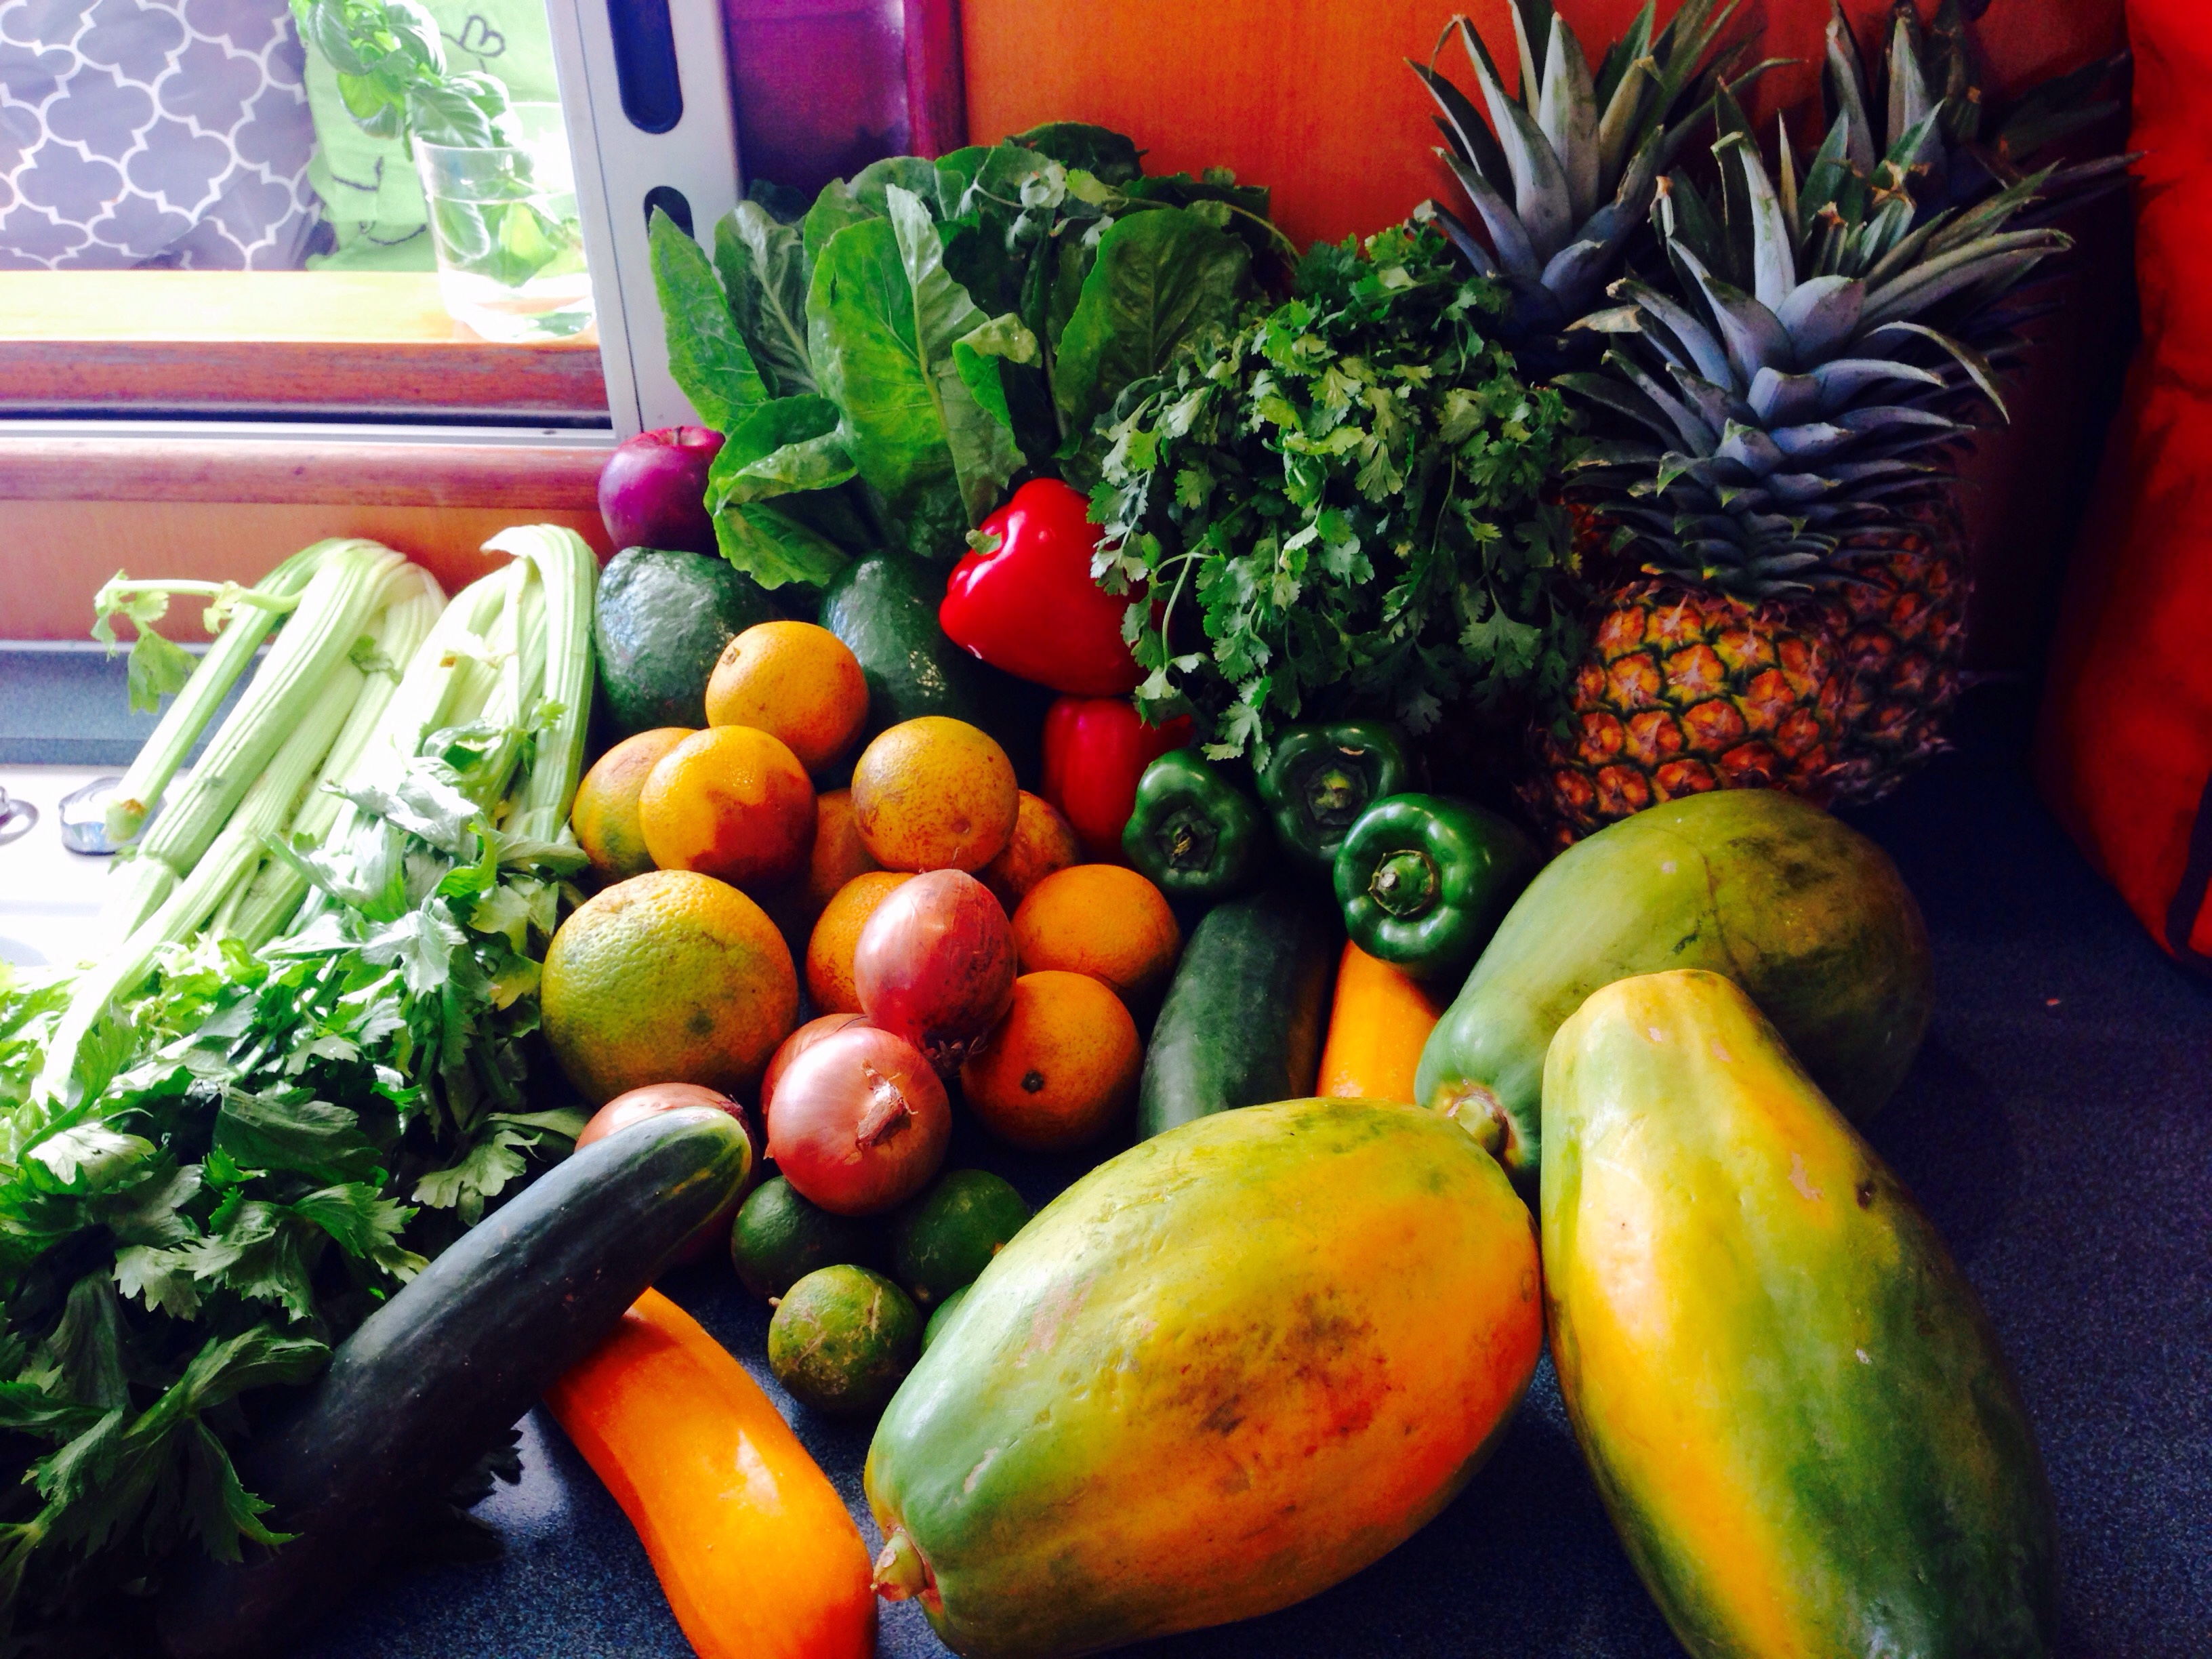 Fresh fruits and veggies from Colon, Panama